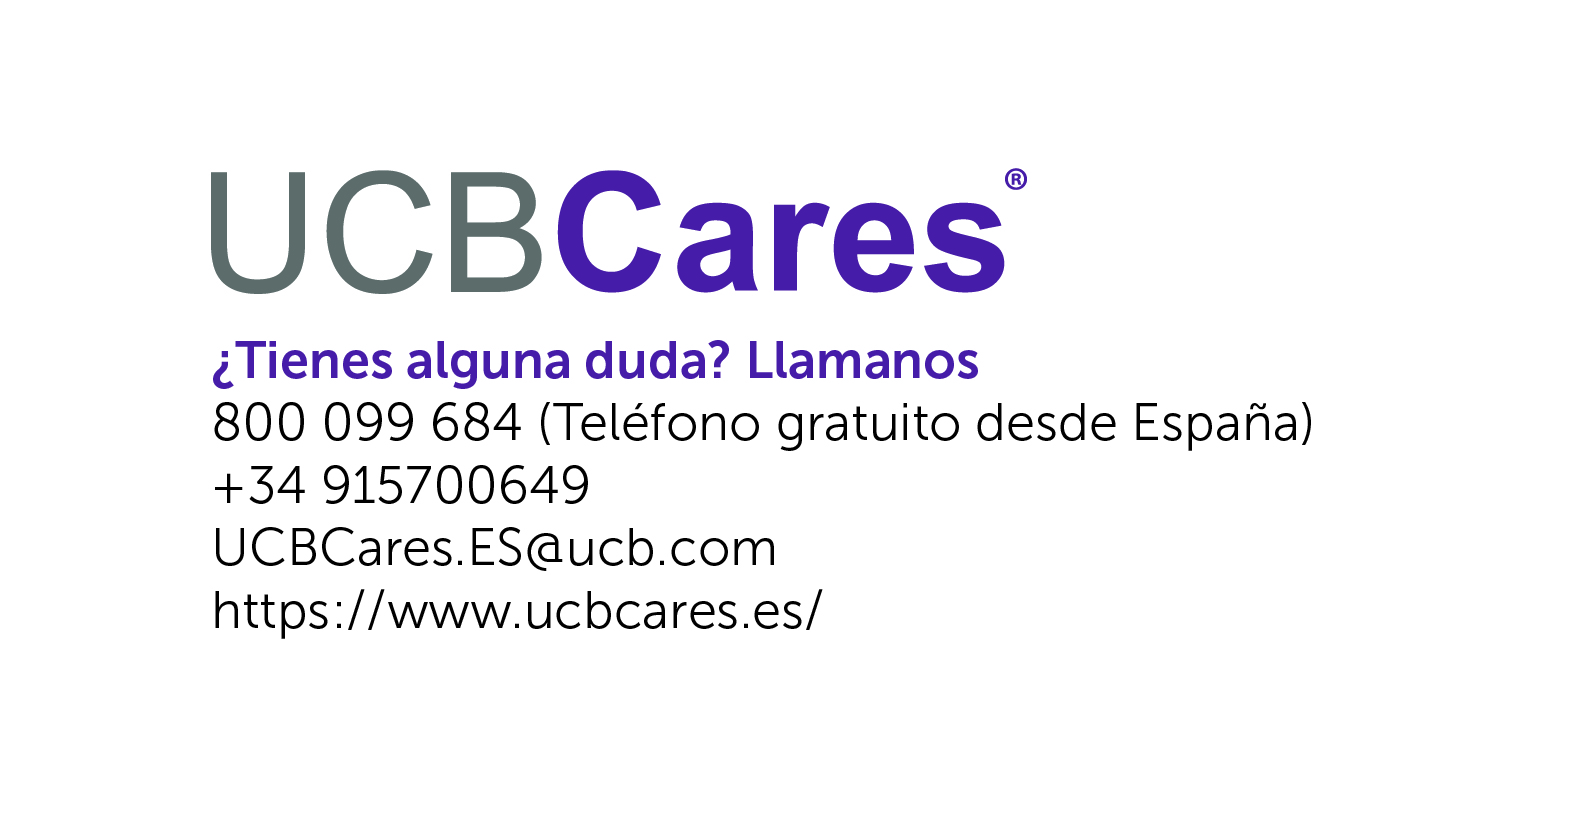 ucbcares